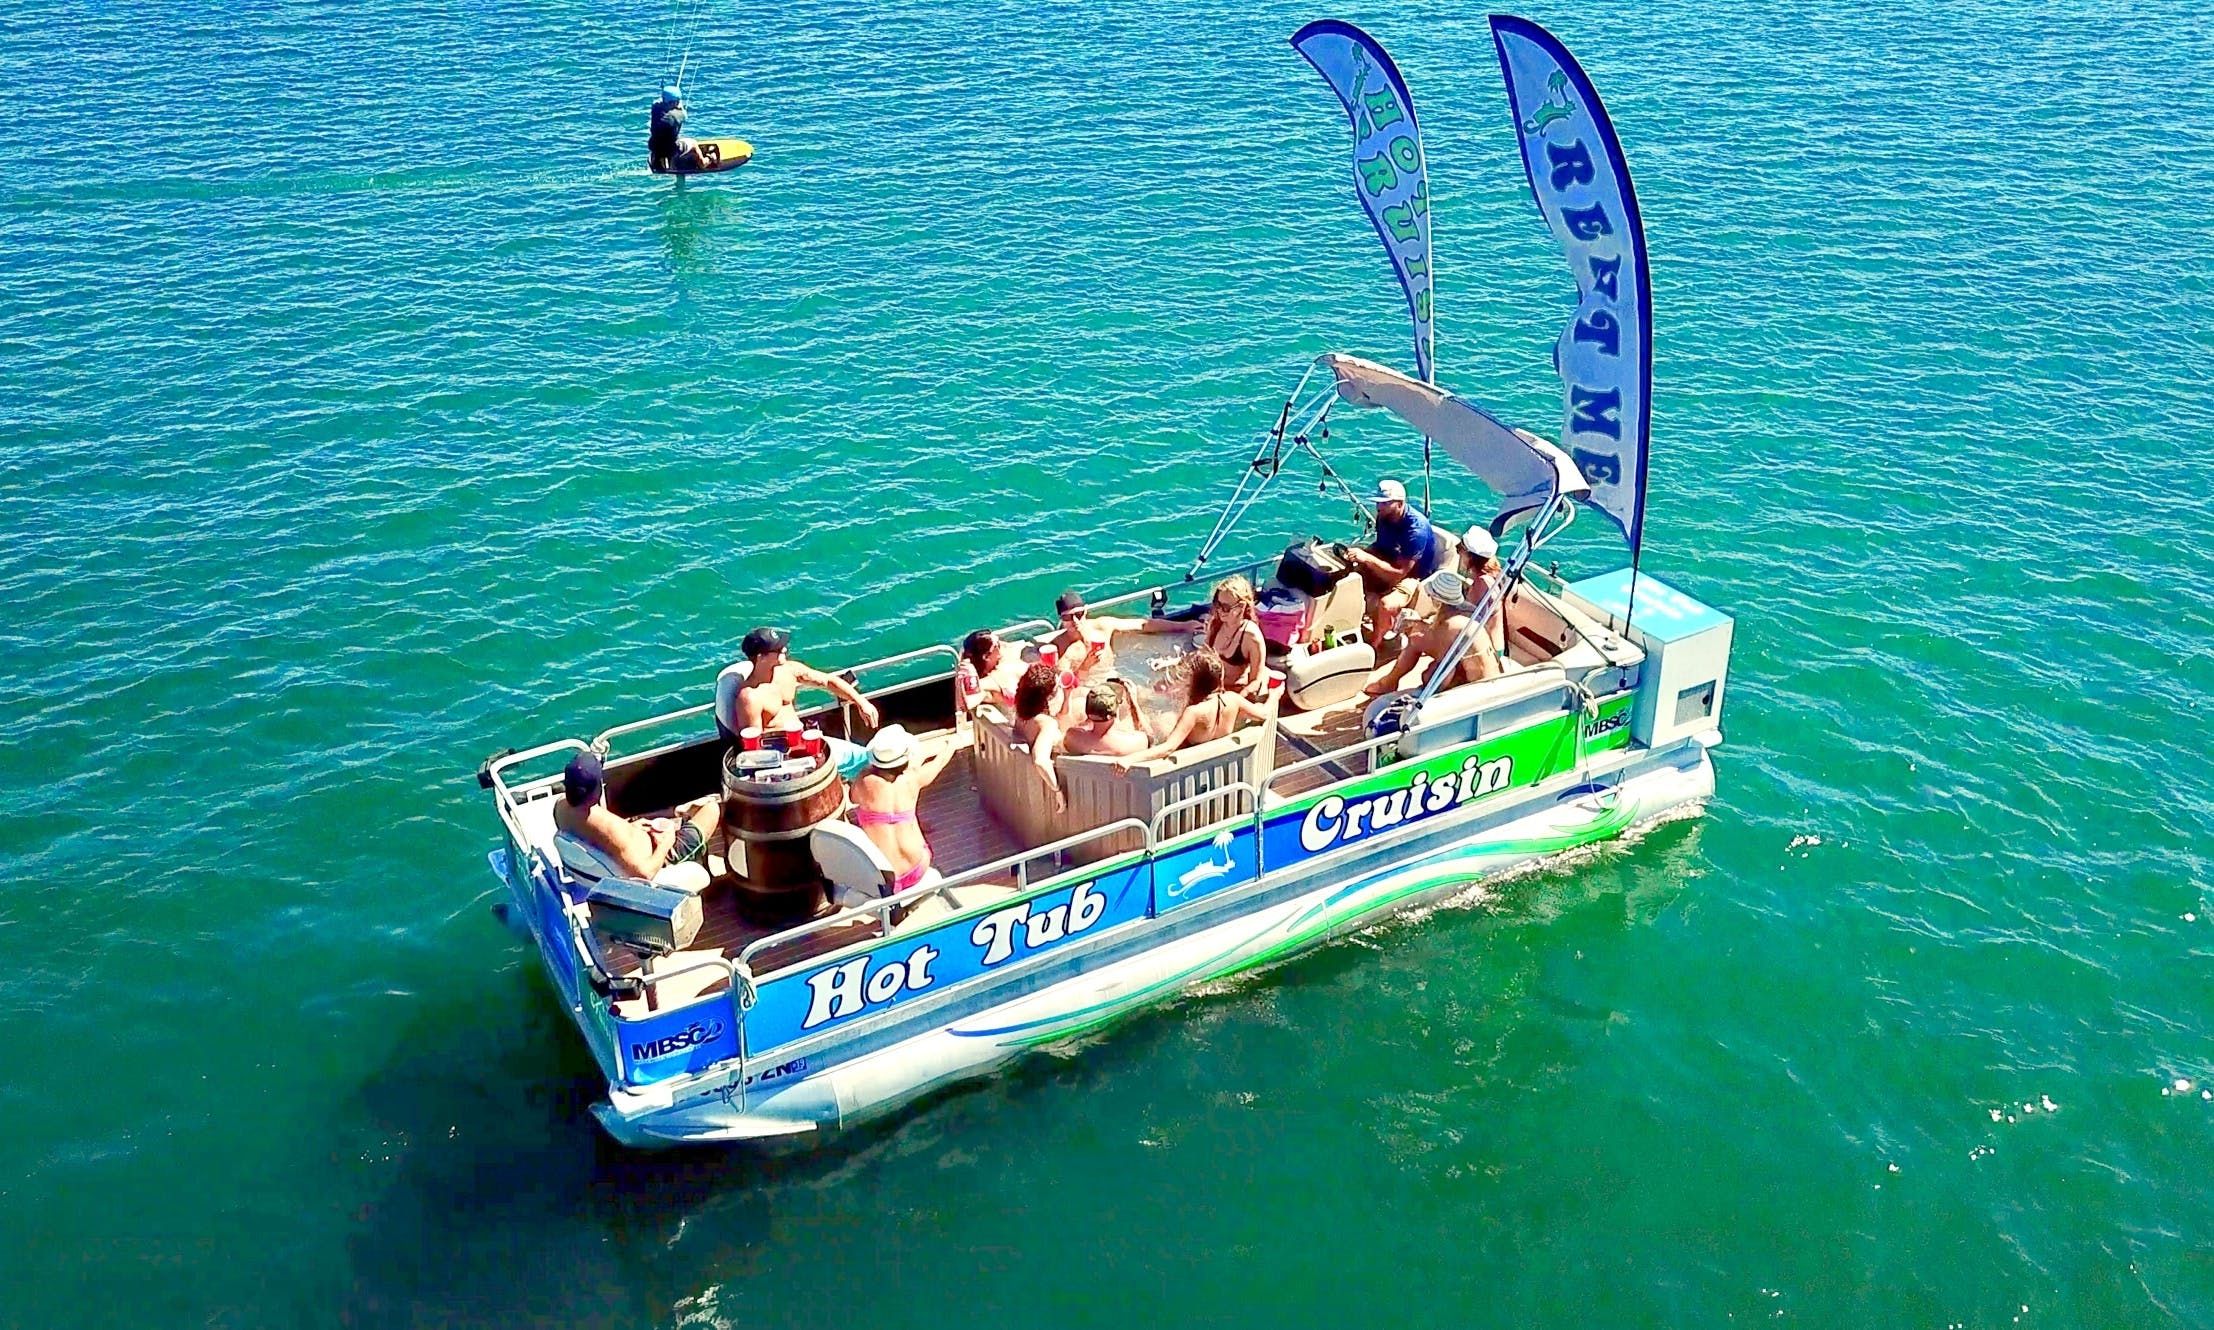 Enjoy a Hot Tub Cruising Boat in San Diego